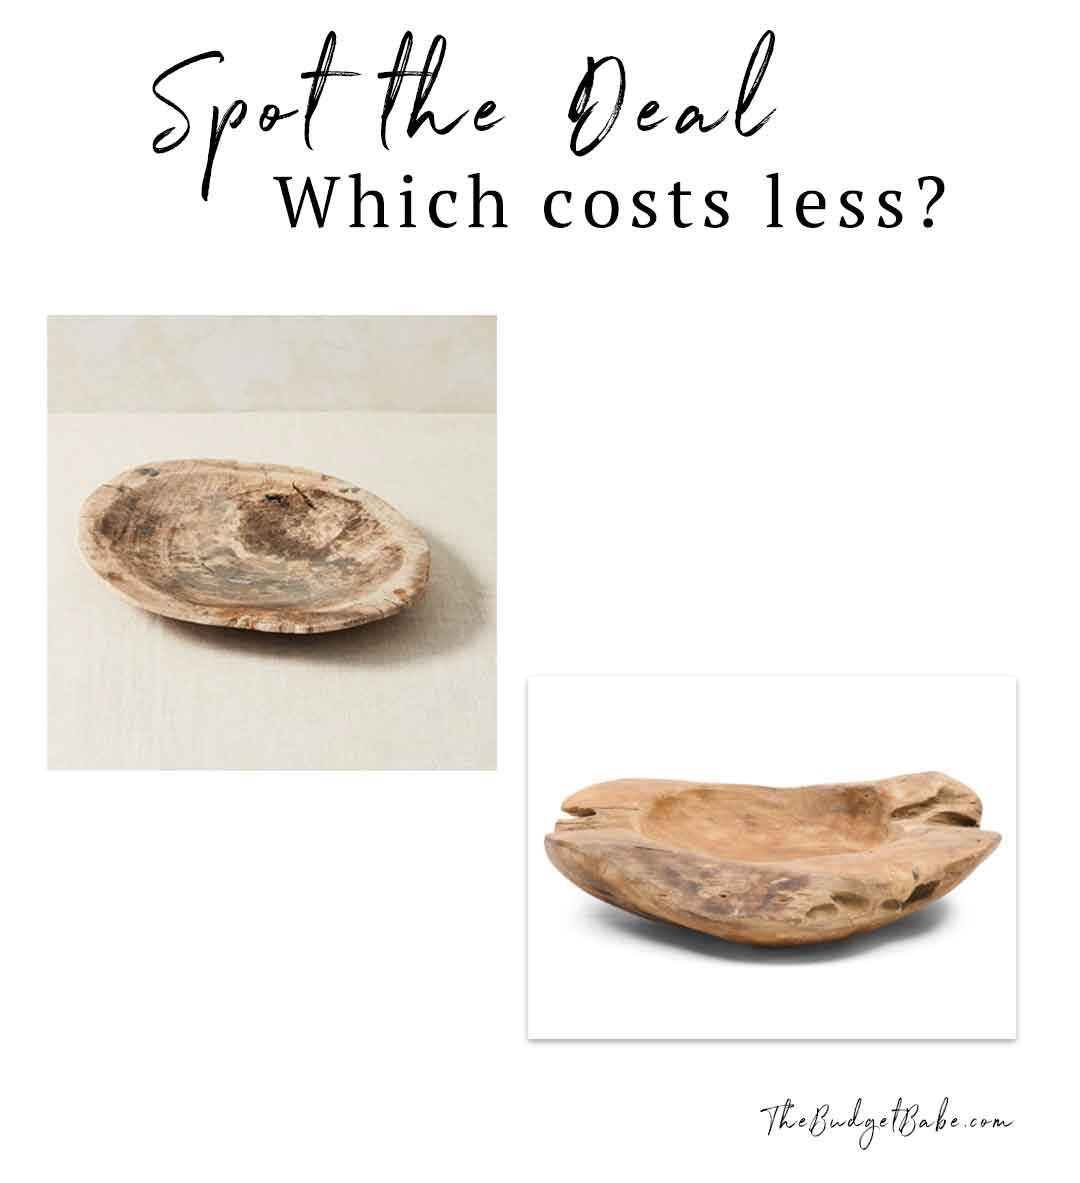 Can you guess which wood bowl costs less?